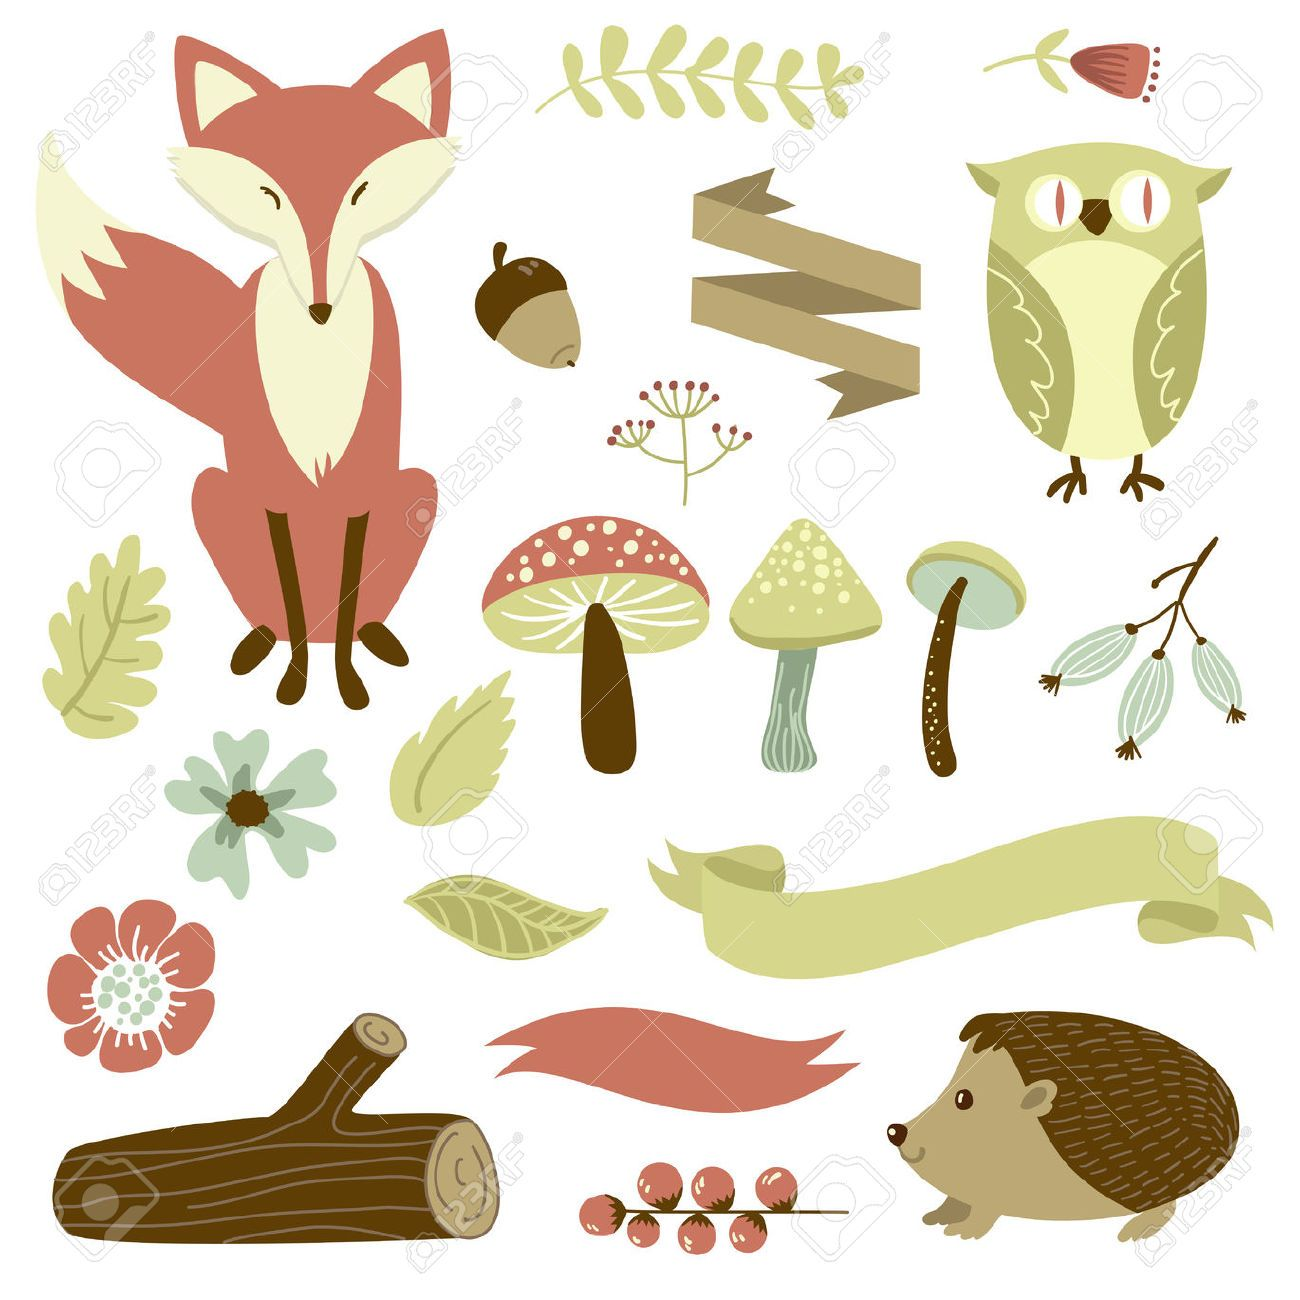 free printable forest animal silhouettes - Google Search ...